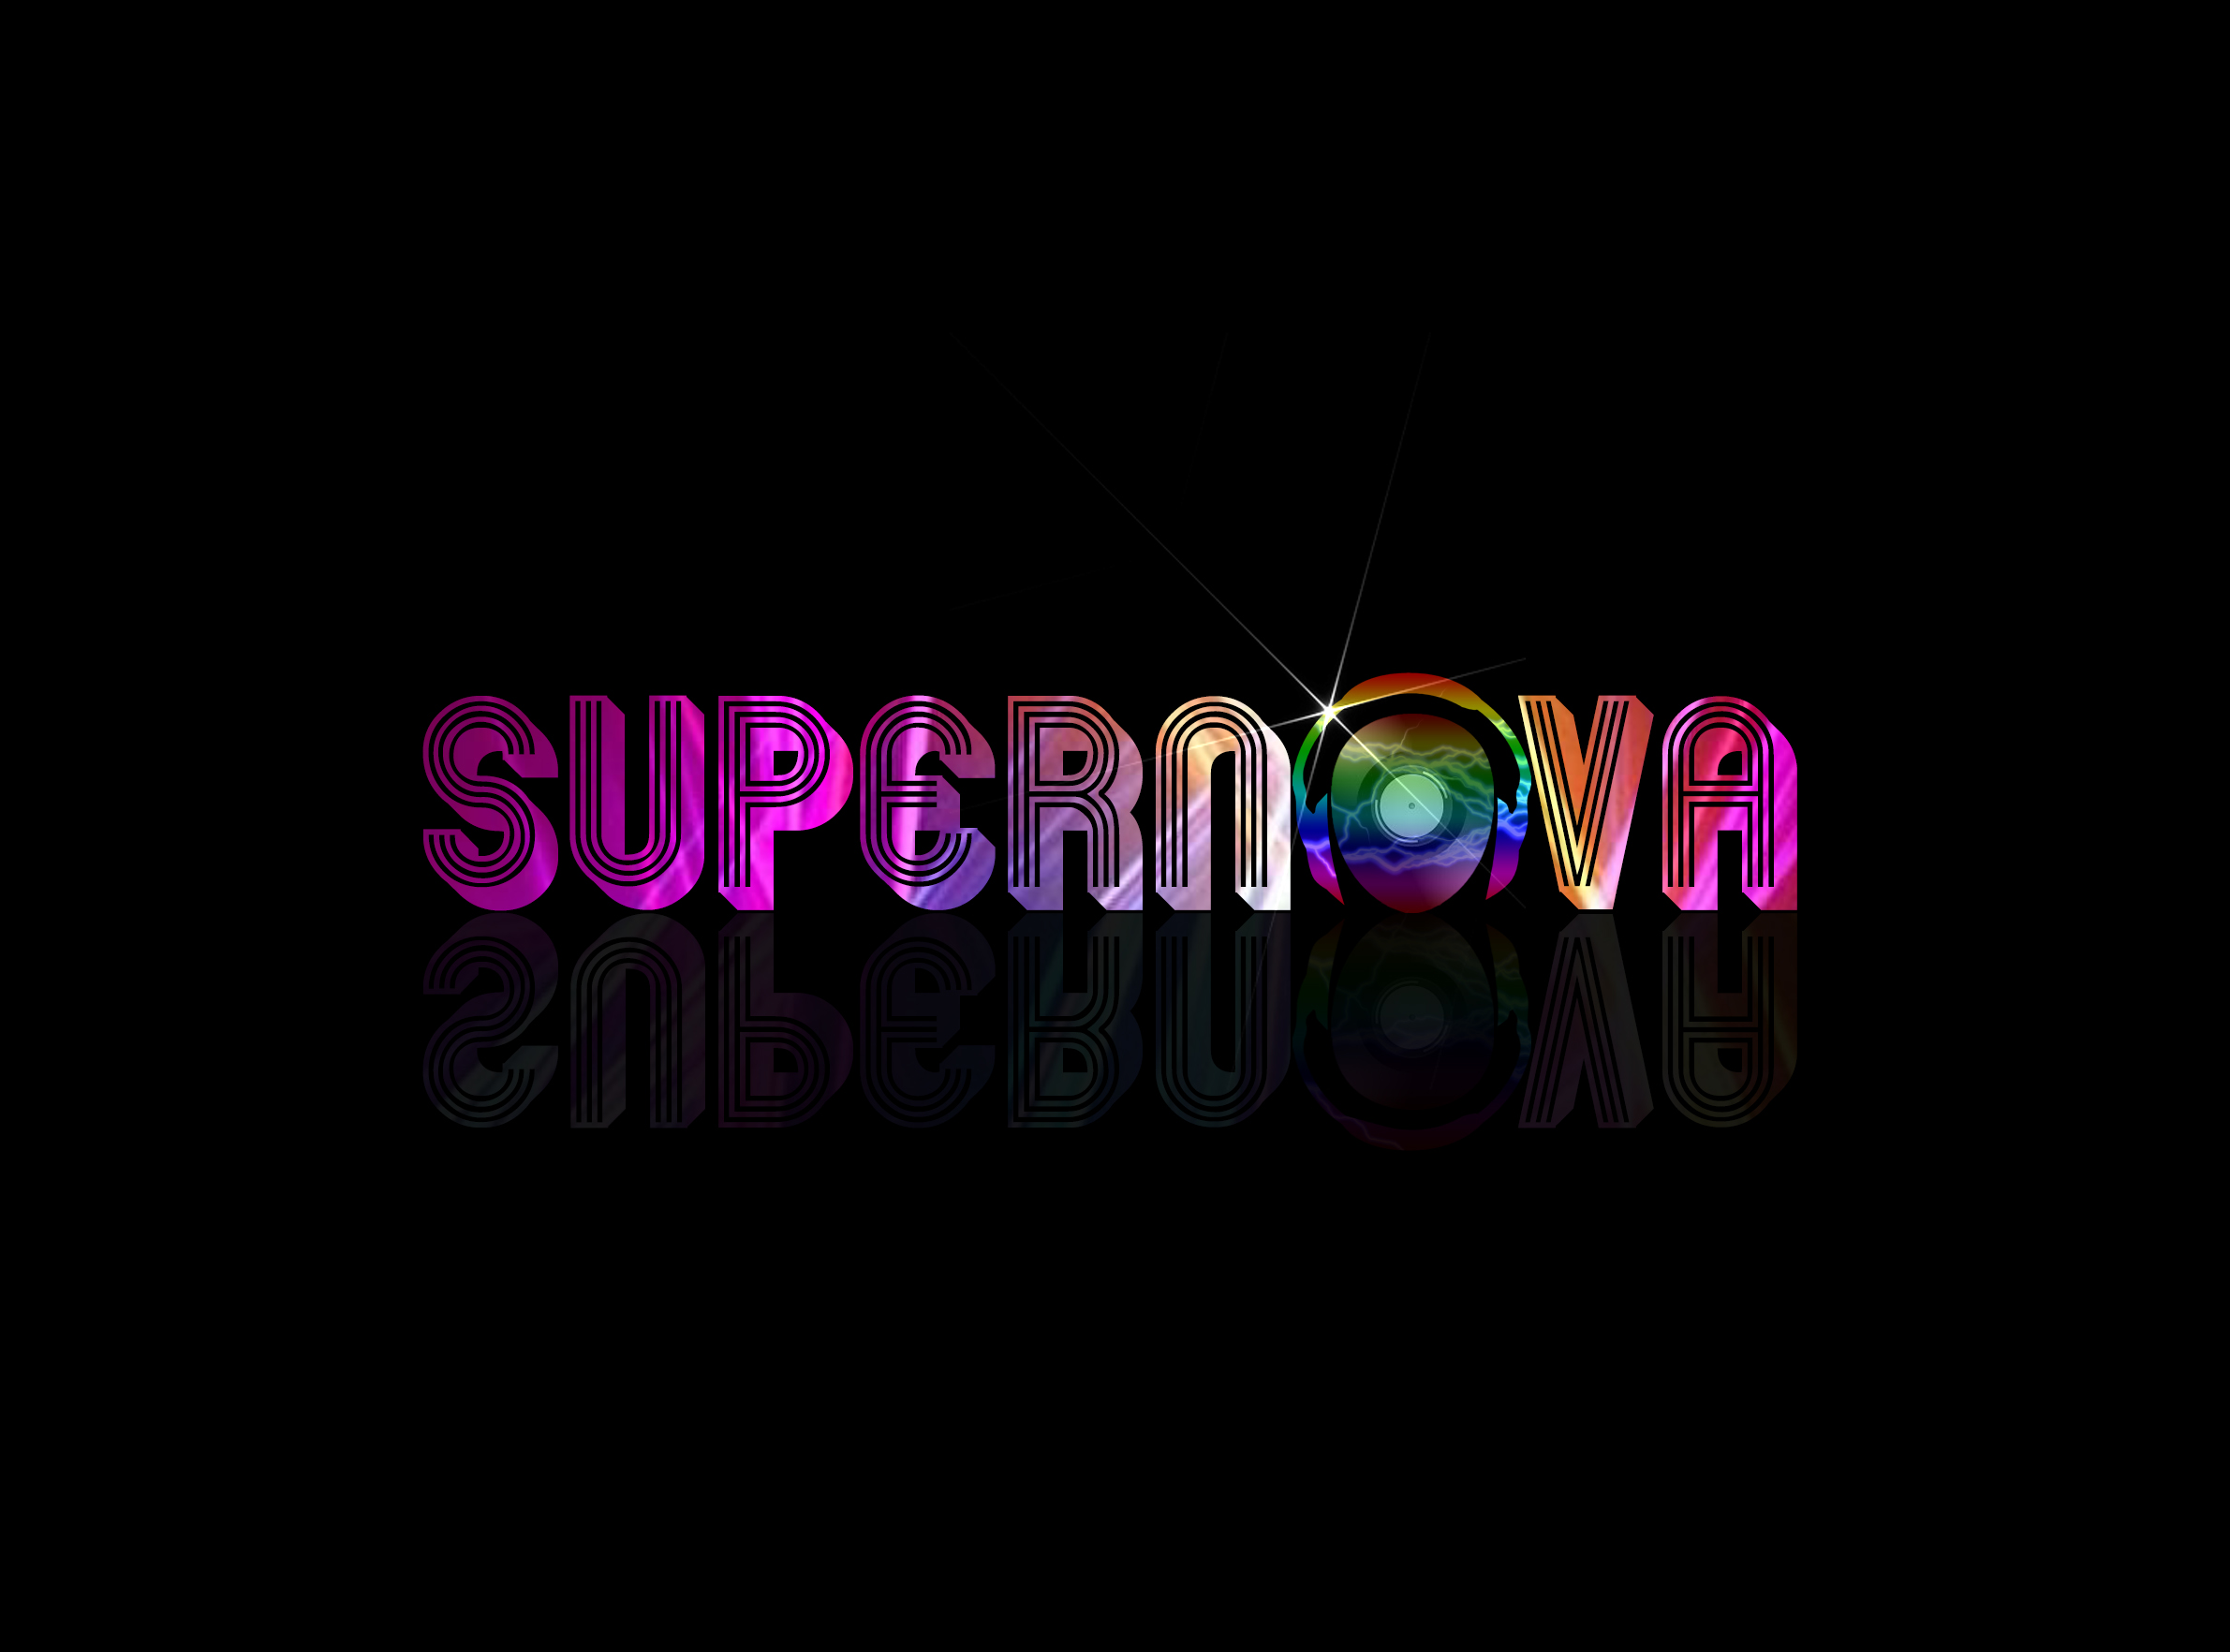 Logo Design by JSDESIGNGROUP - Entry No. 12 in the Logo Design Contest Creative Logo Design for Supernova.